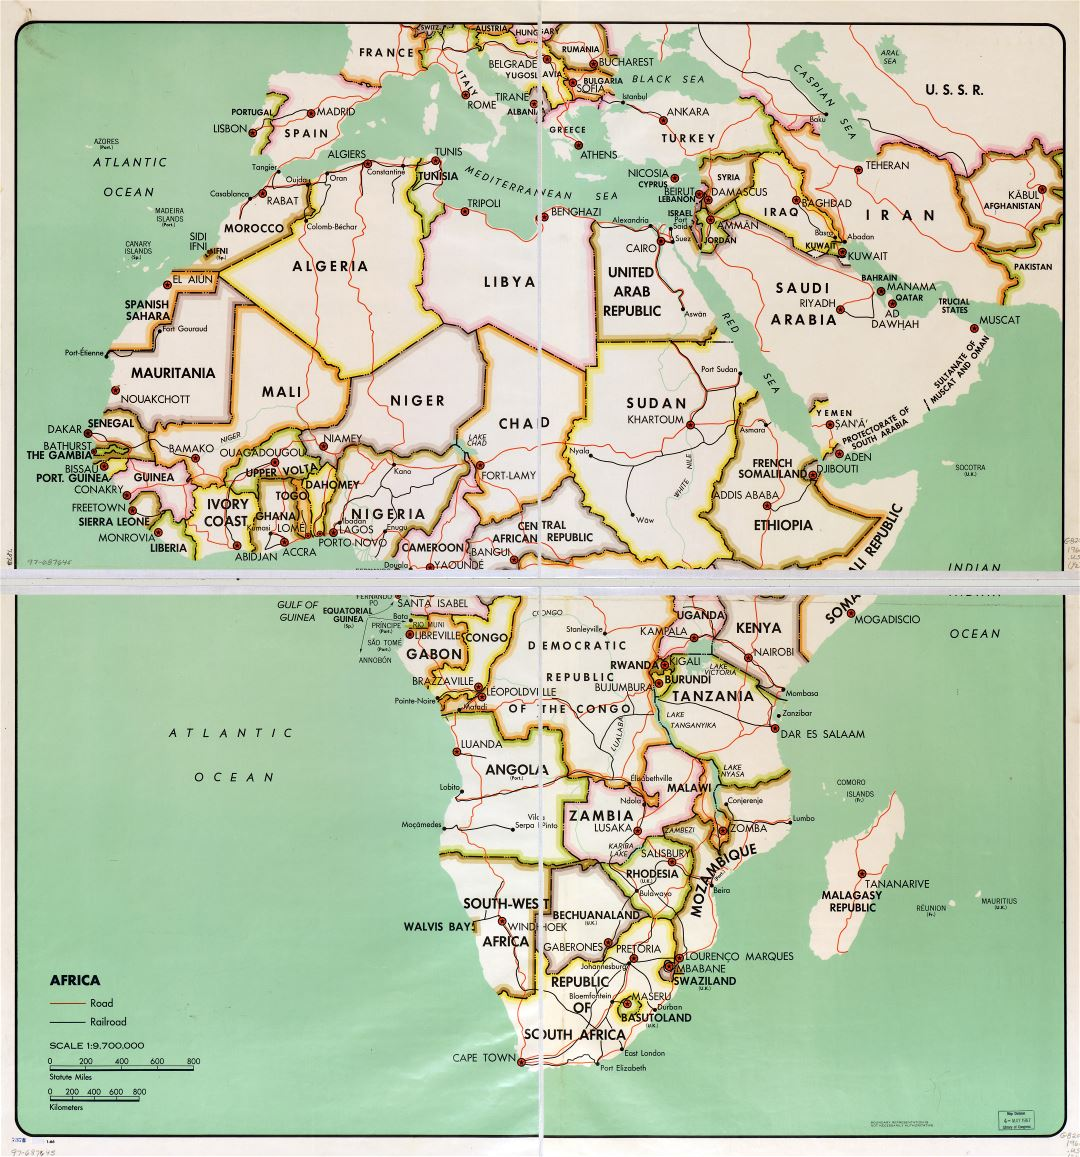 In high resolution detail political map of Africa with the